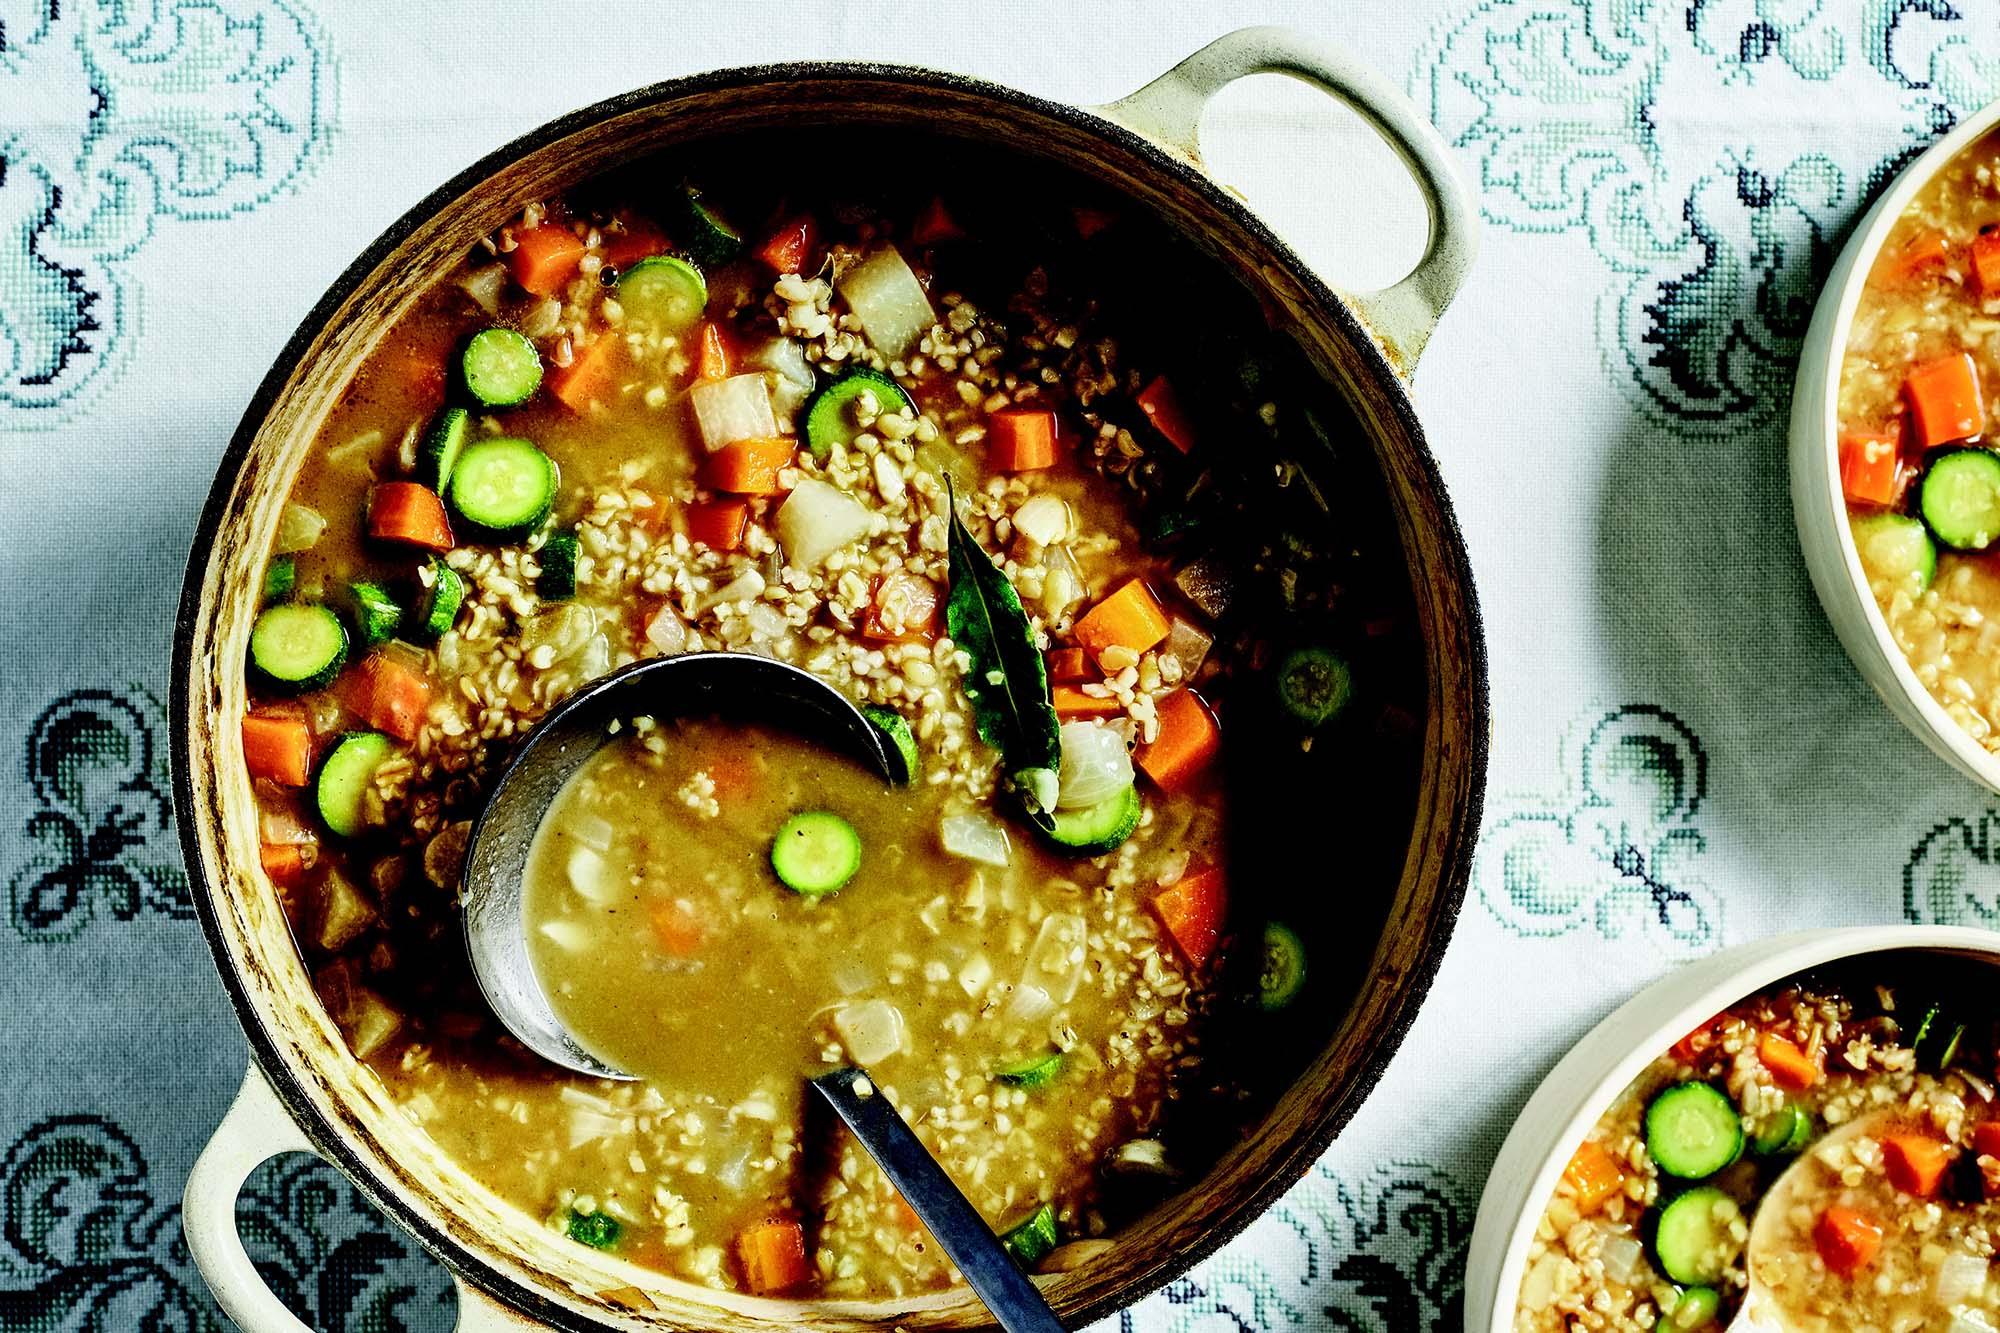 A dutch oven with vegetarian soup with freekeh along with a ladle and two bowls.